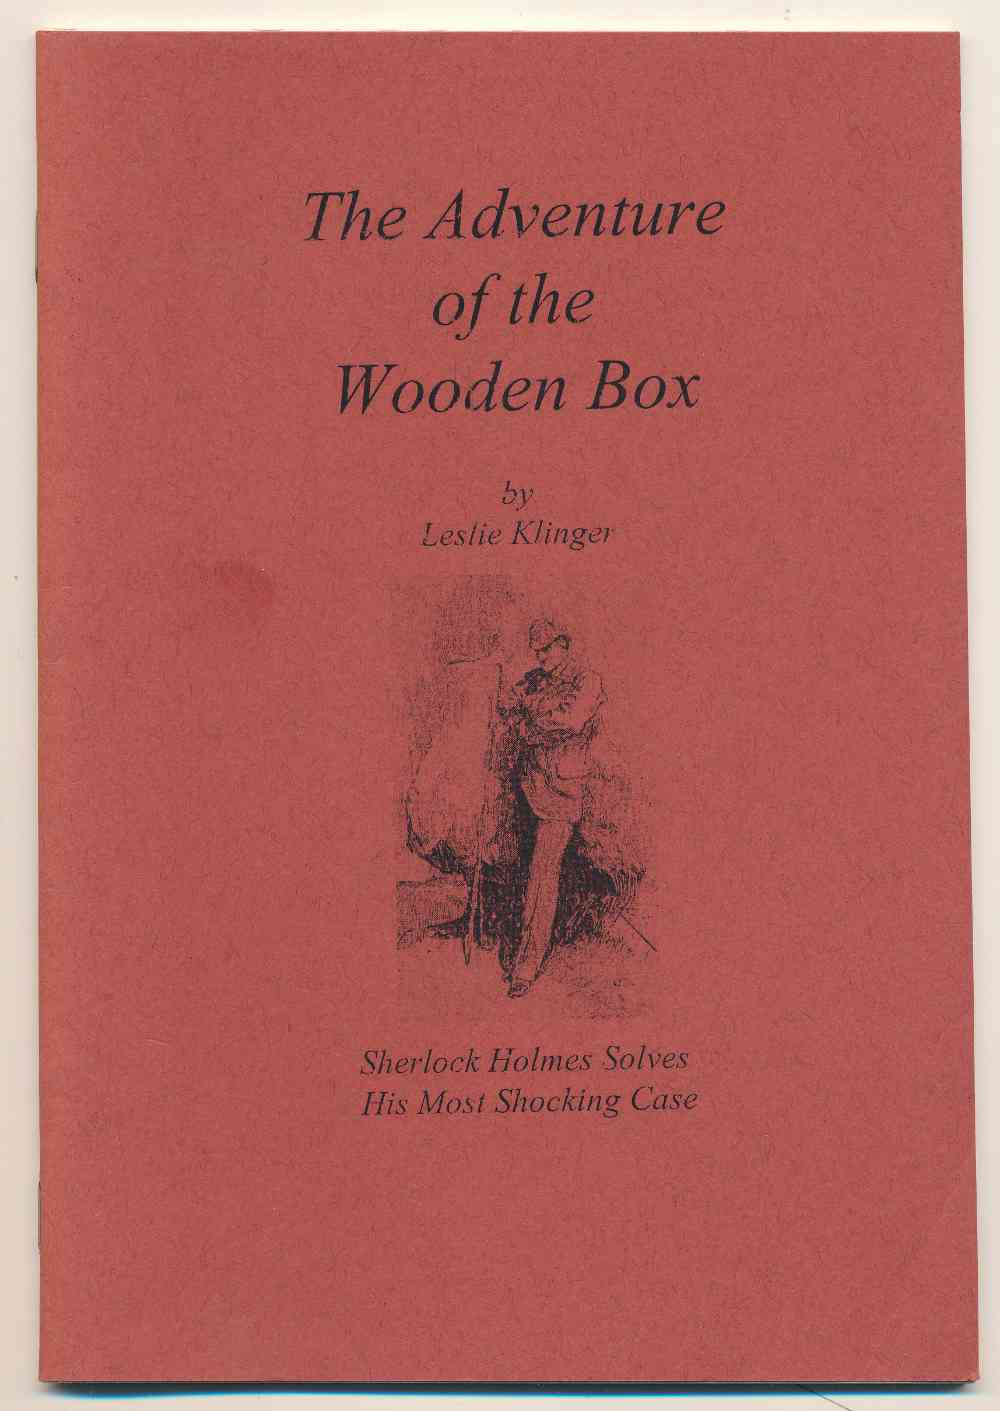 The adventure of the wooden box